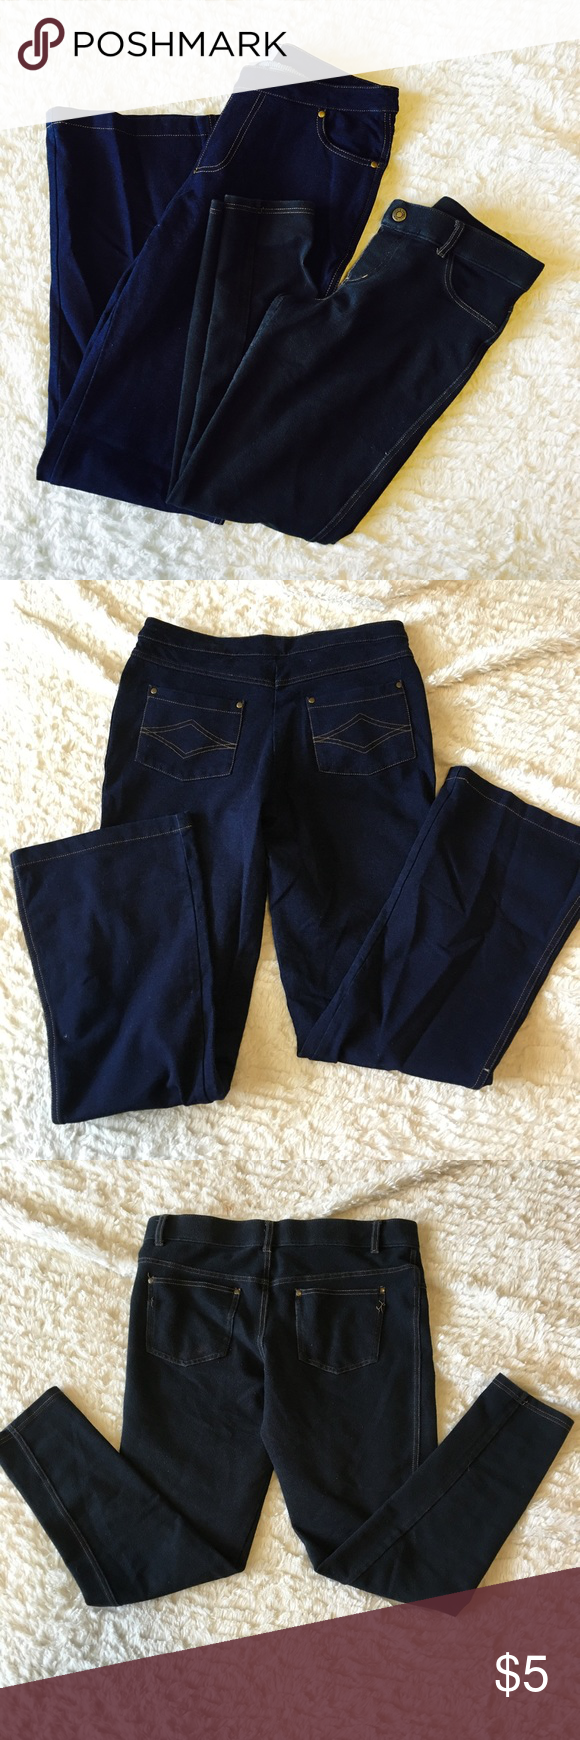 Jegging Pants First Jean: Brand-Pajama Pants - Size S/M- Great Condition-Bootcut Style • Second Jean: Jegging Jeans• NY& Co-Size M- Good Condition• Both Dark Denim• Machine wash Cold• Tumble Dry Low• Pants Leggings